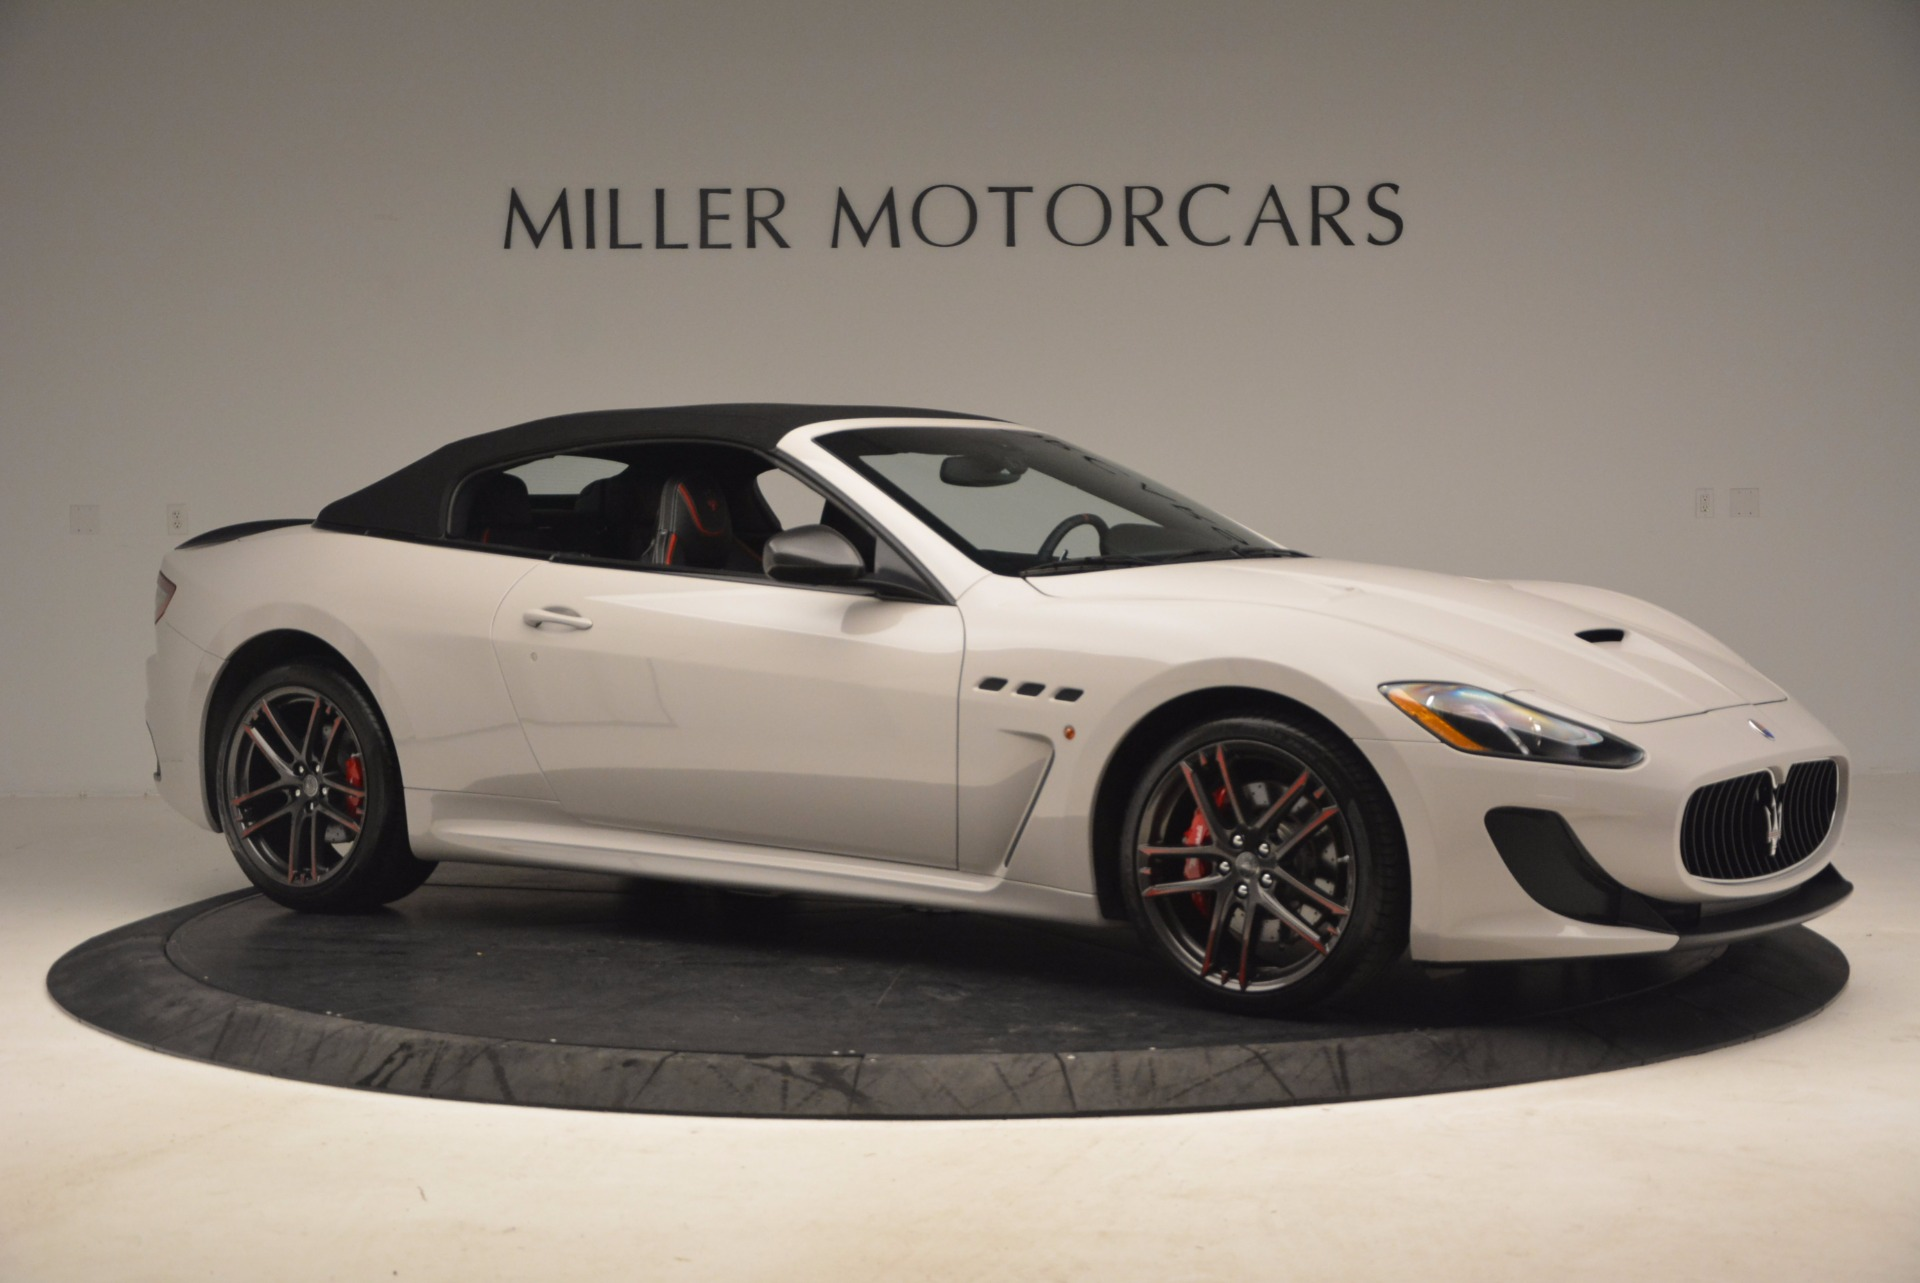 Used 2015 Maserati GranTurismo MC Centennial For Sale In Westport, CT 1107_p22